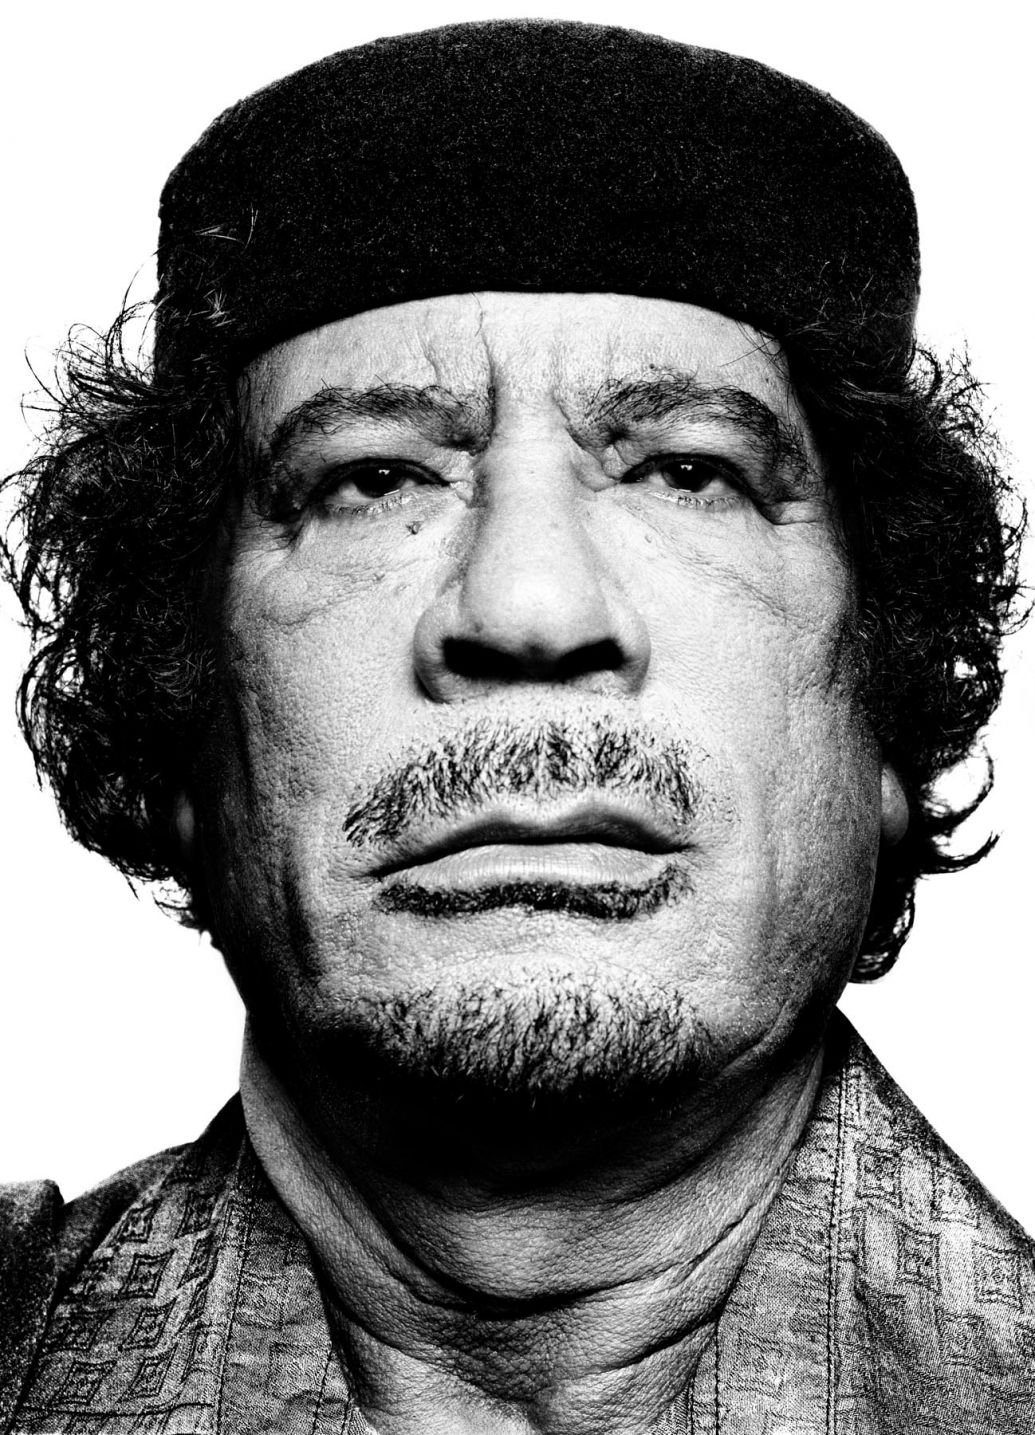 Muammar Gaddafi portrait photography